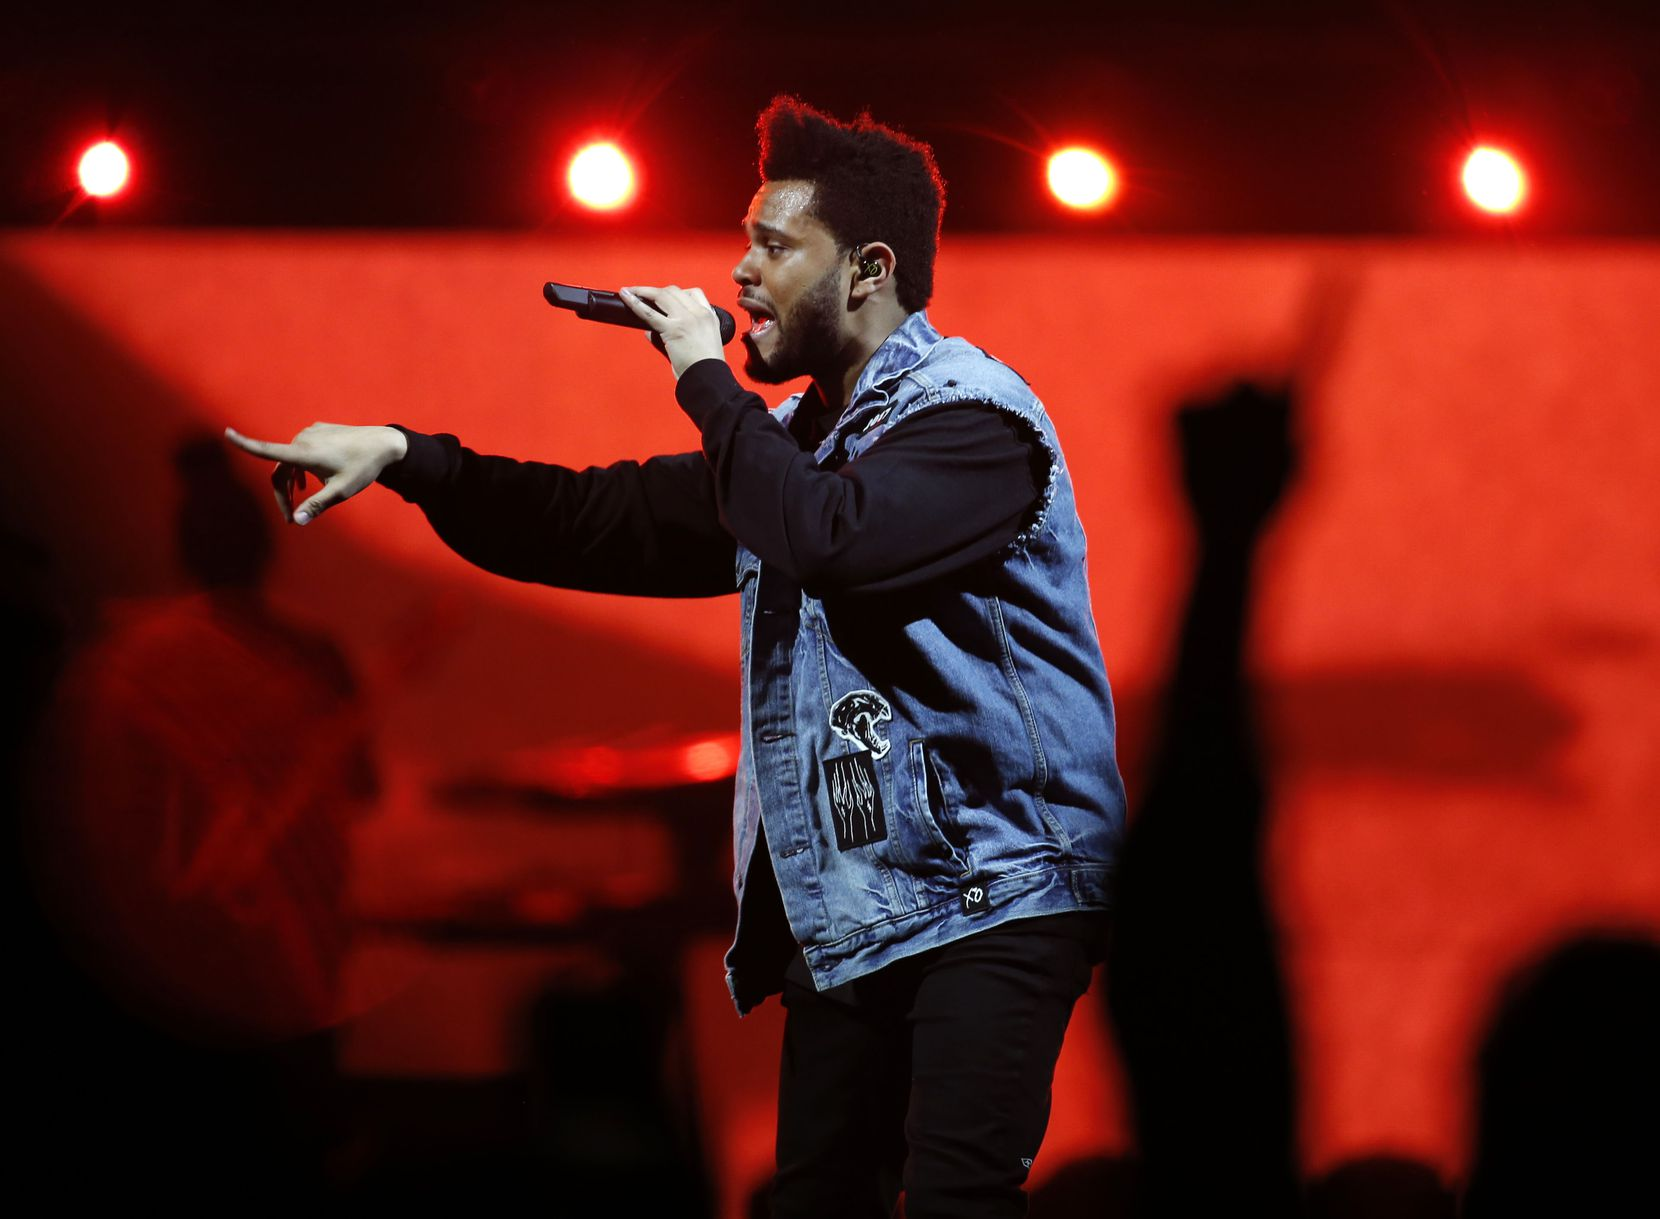 The Weeknd performs at American Airlines Center in Dallas on Thursday, May 4, 2017.